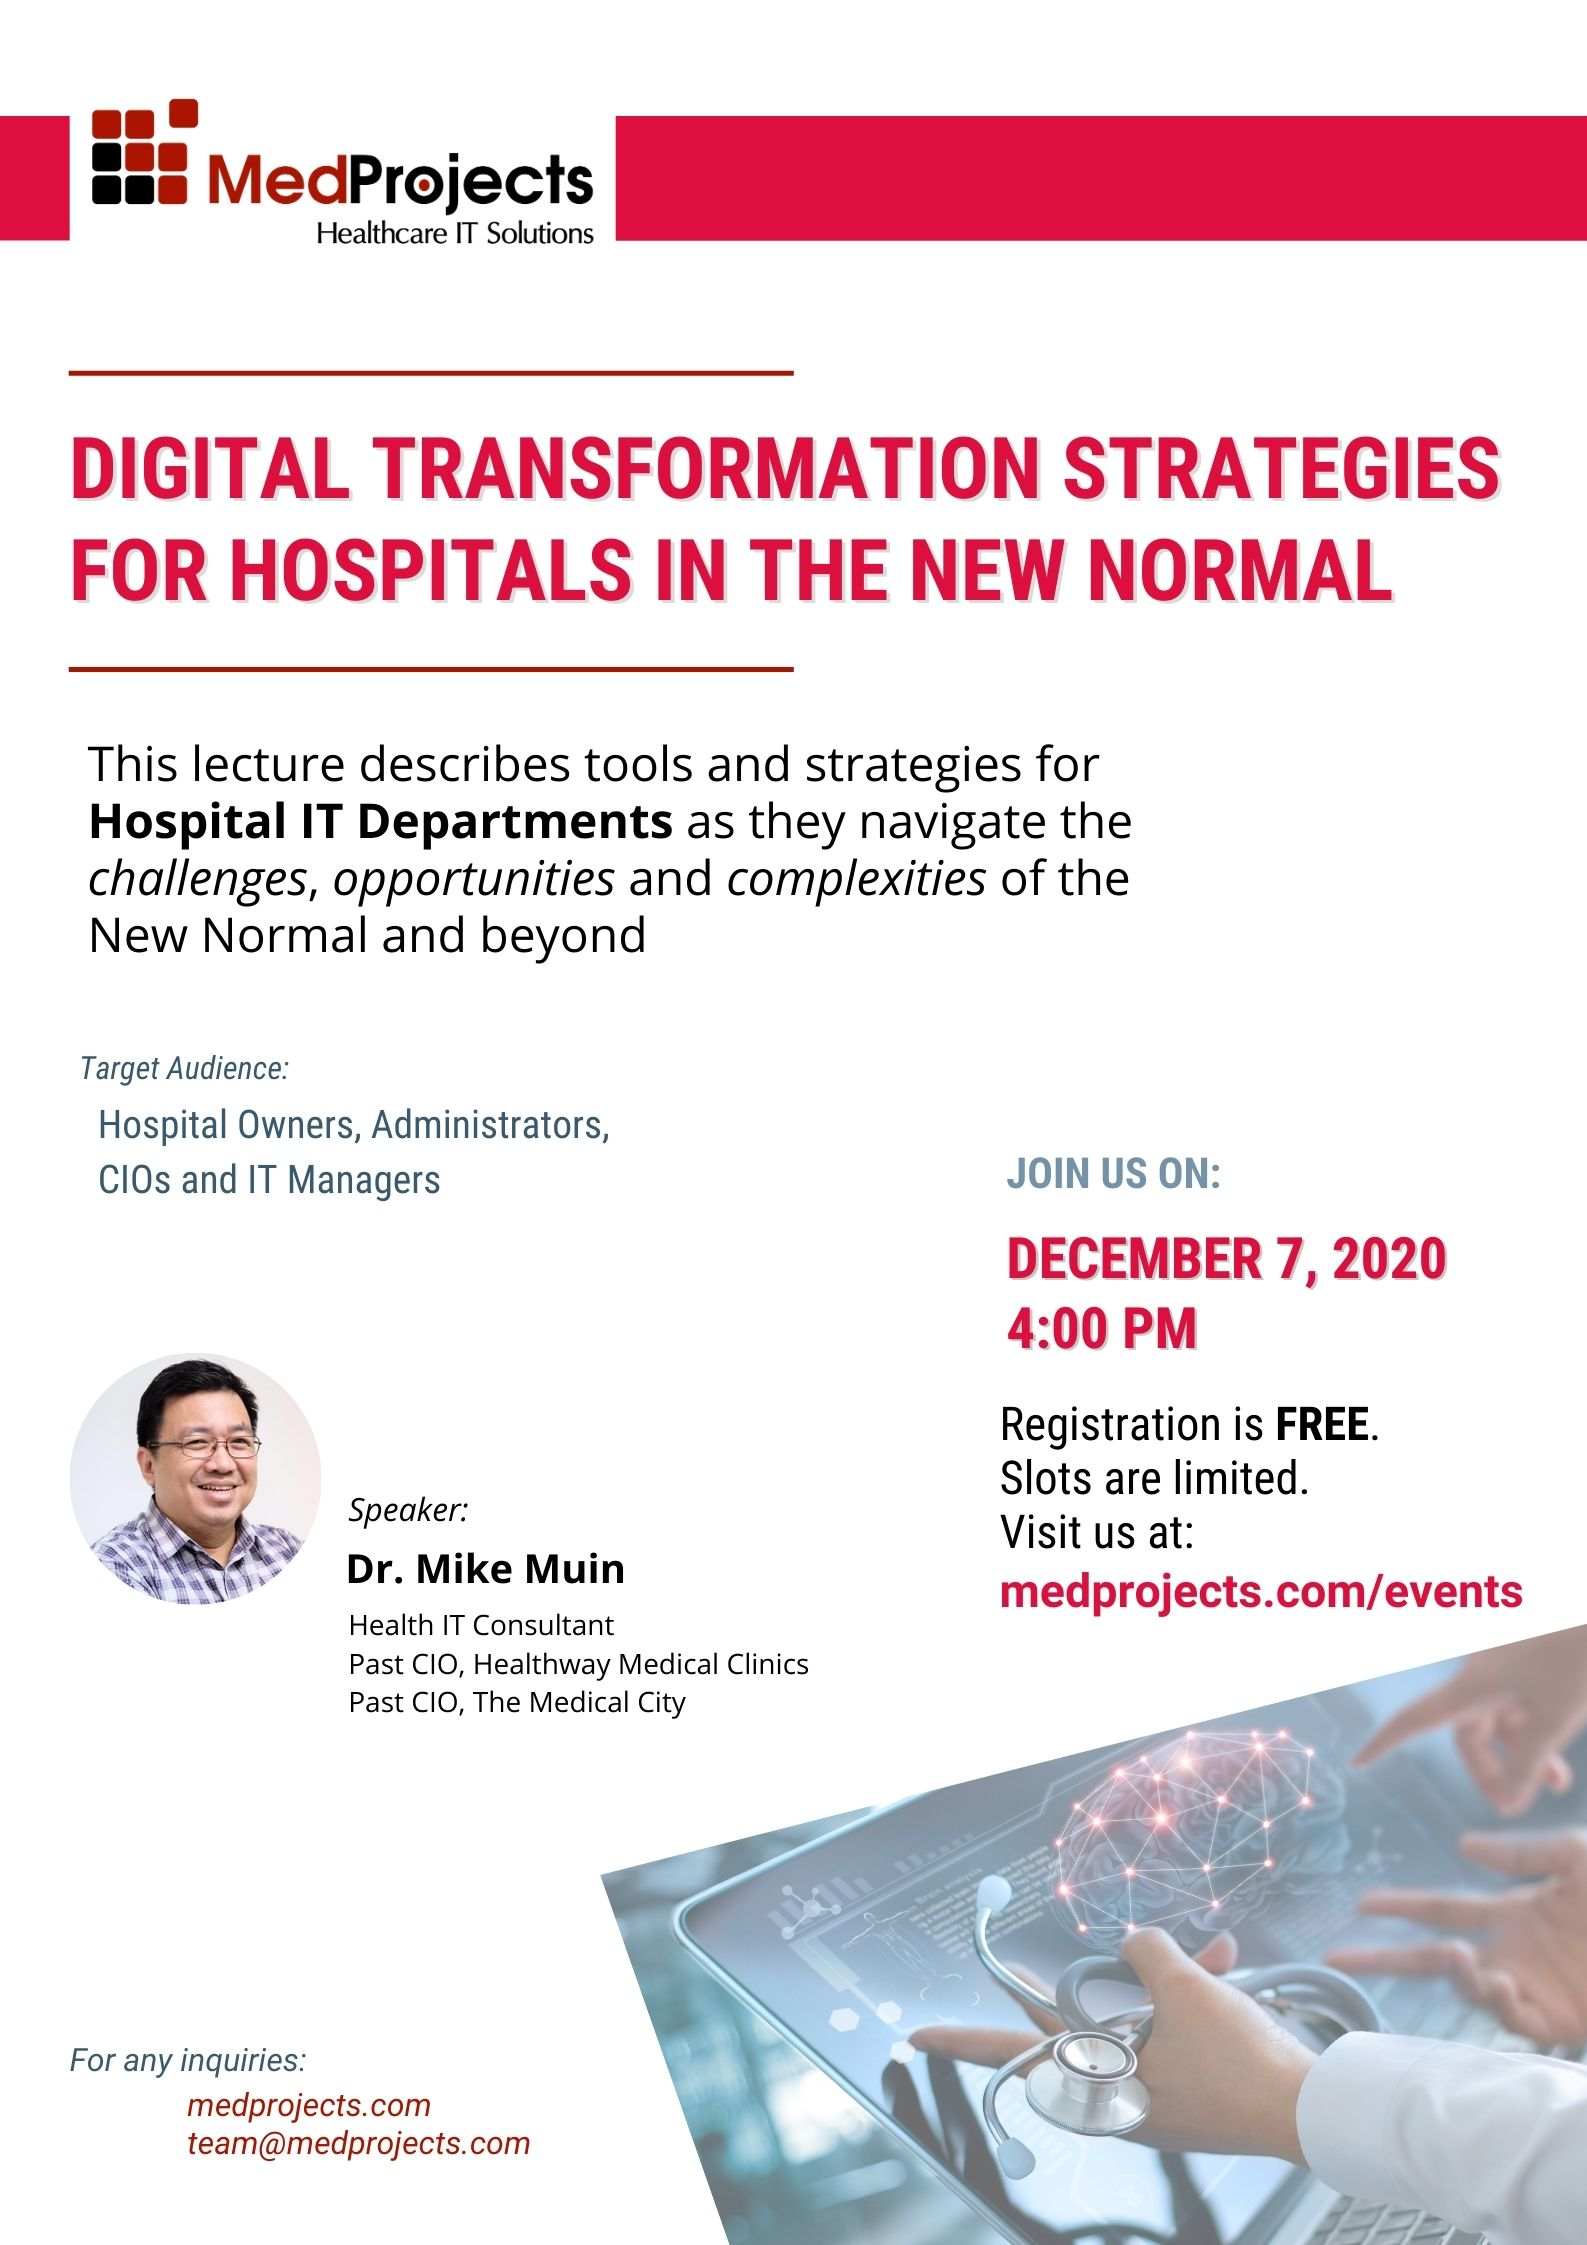 Digital Transformation Strategies for Hospitals in the New Normal